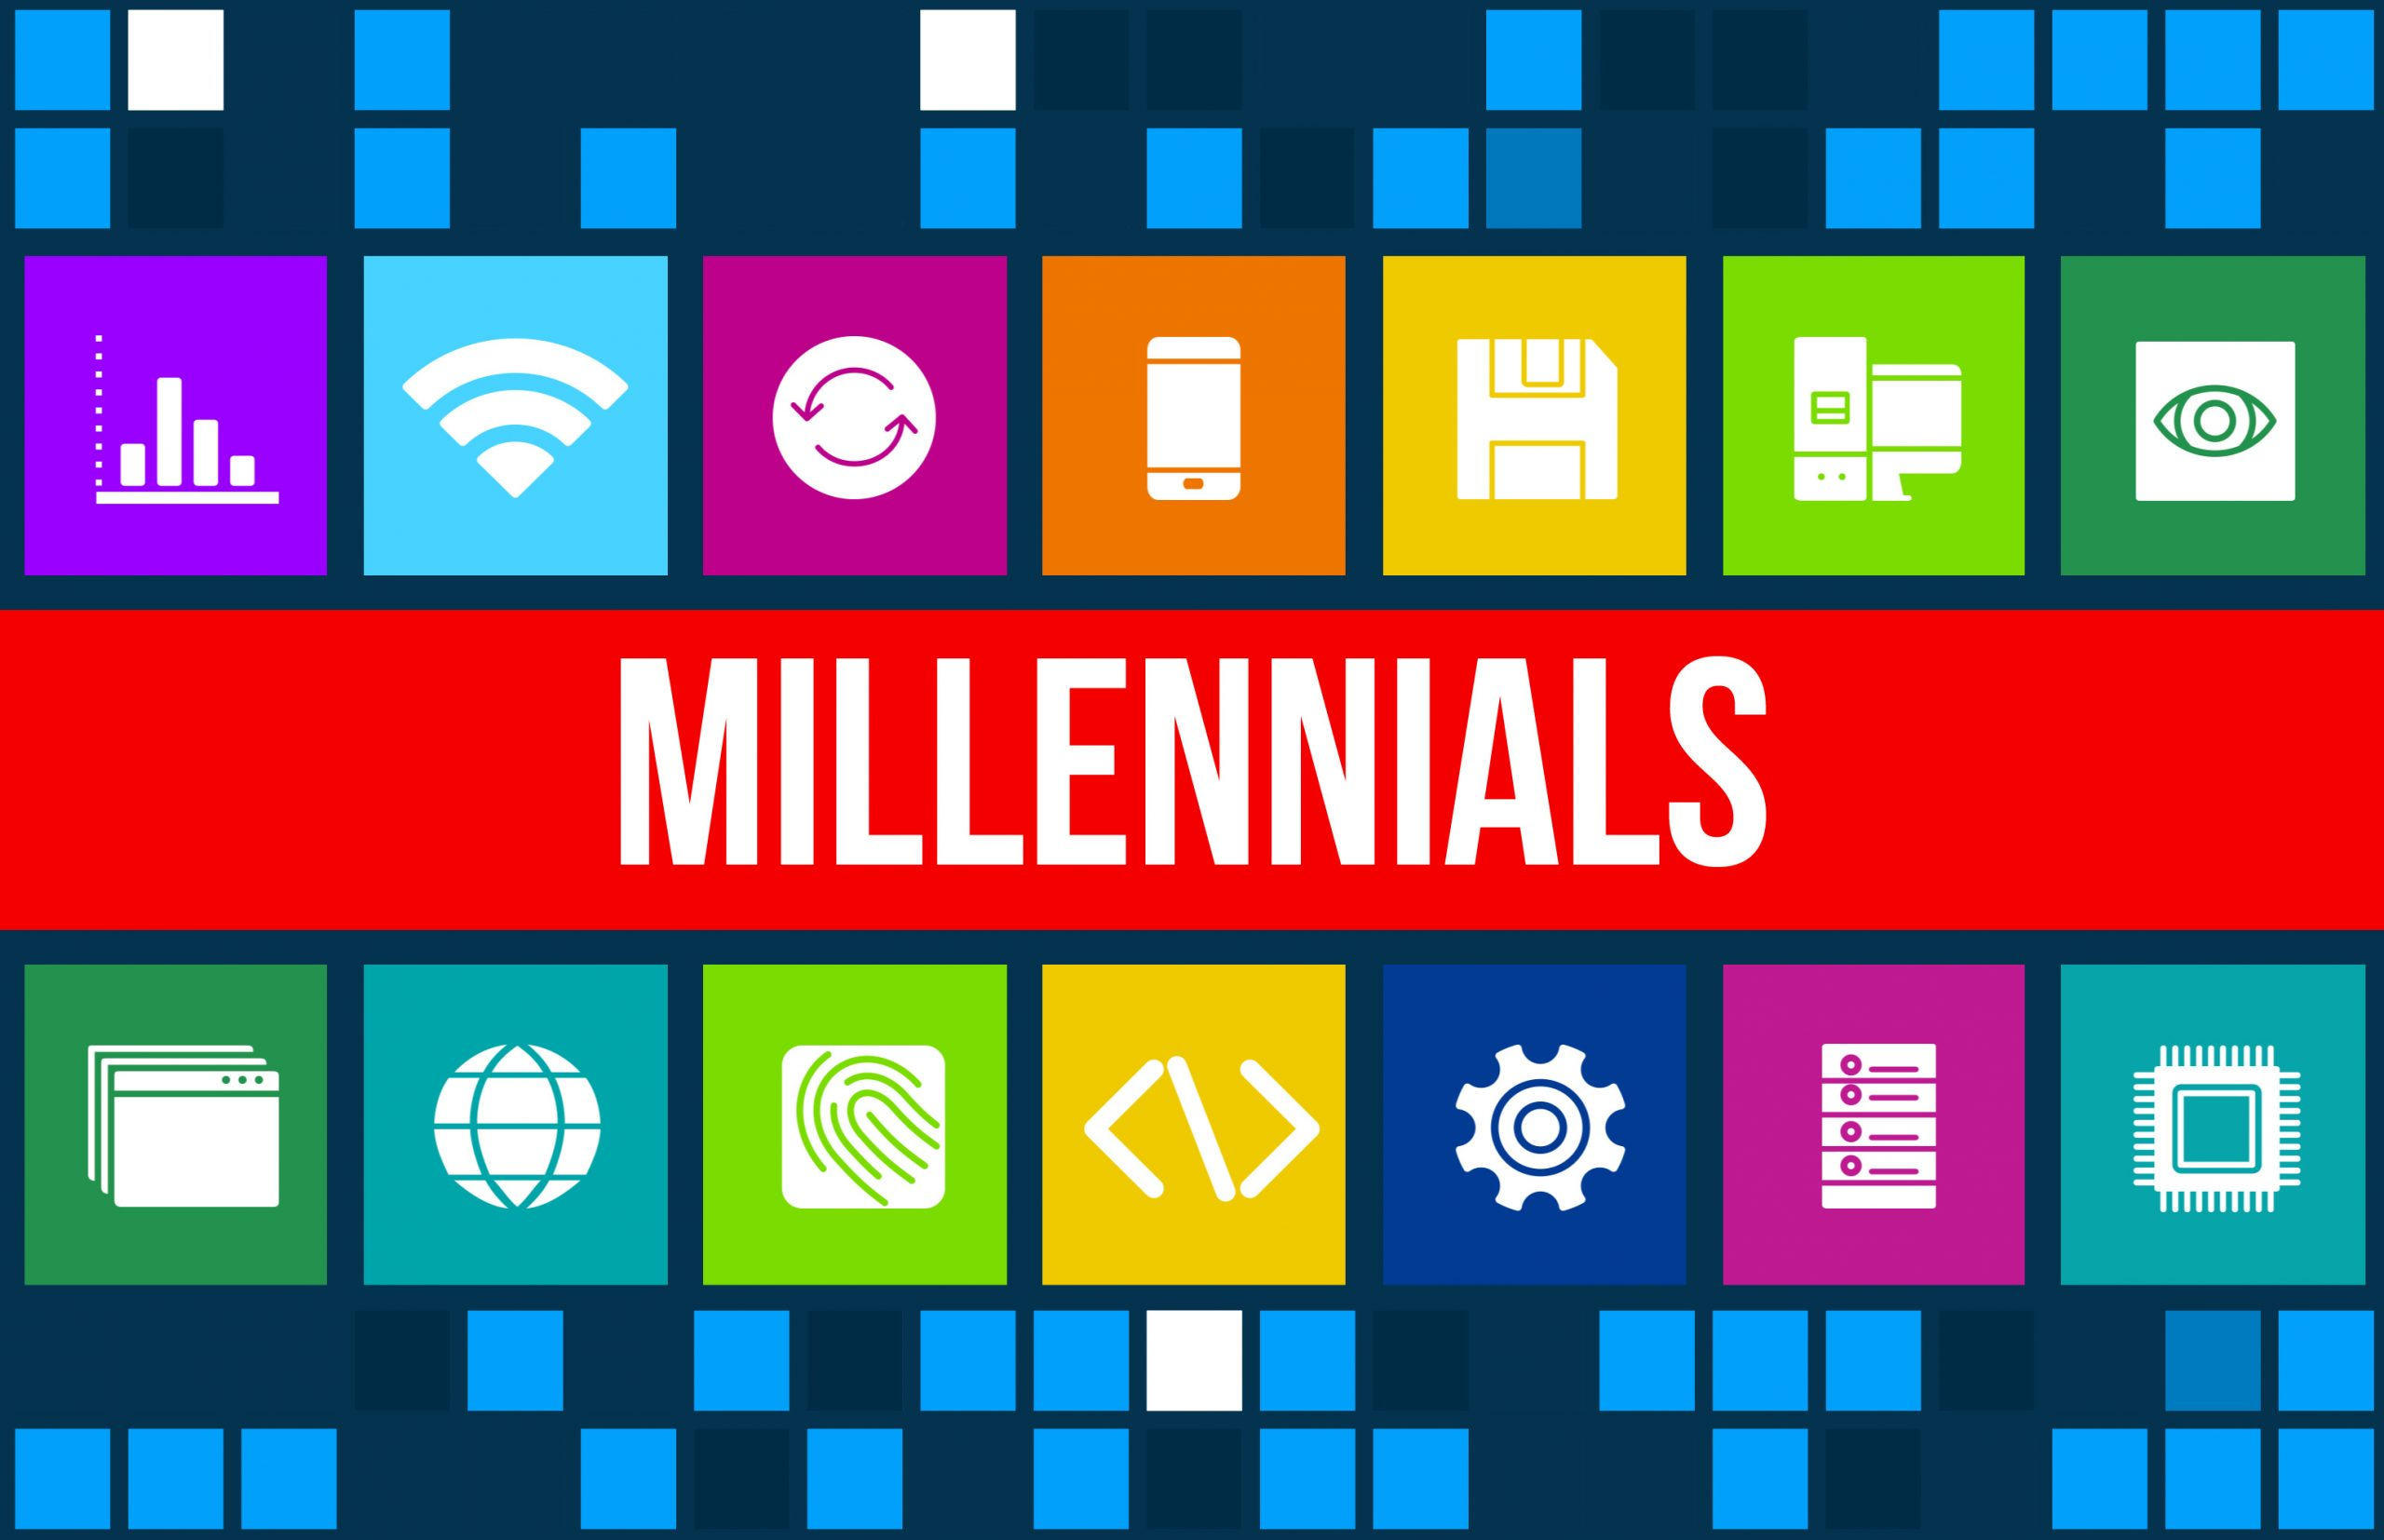 Millennials concept image with business icons